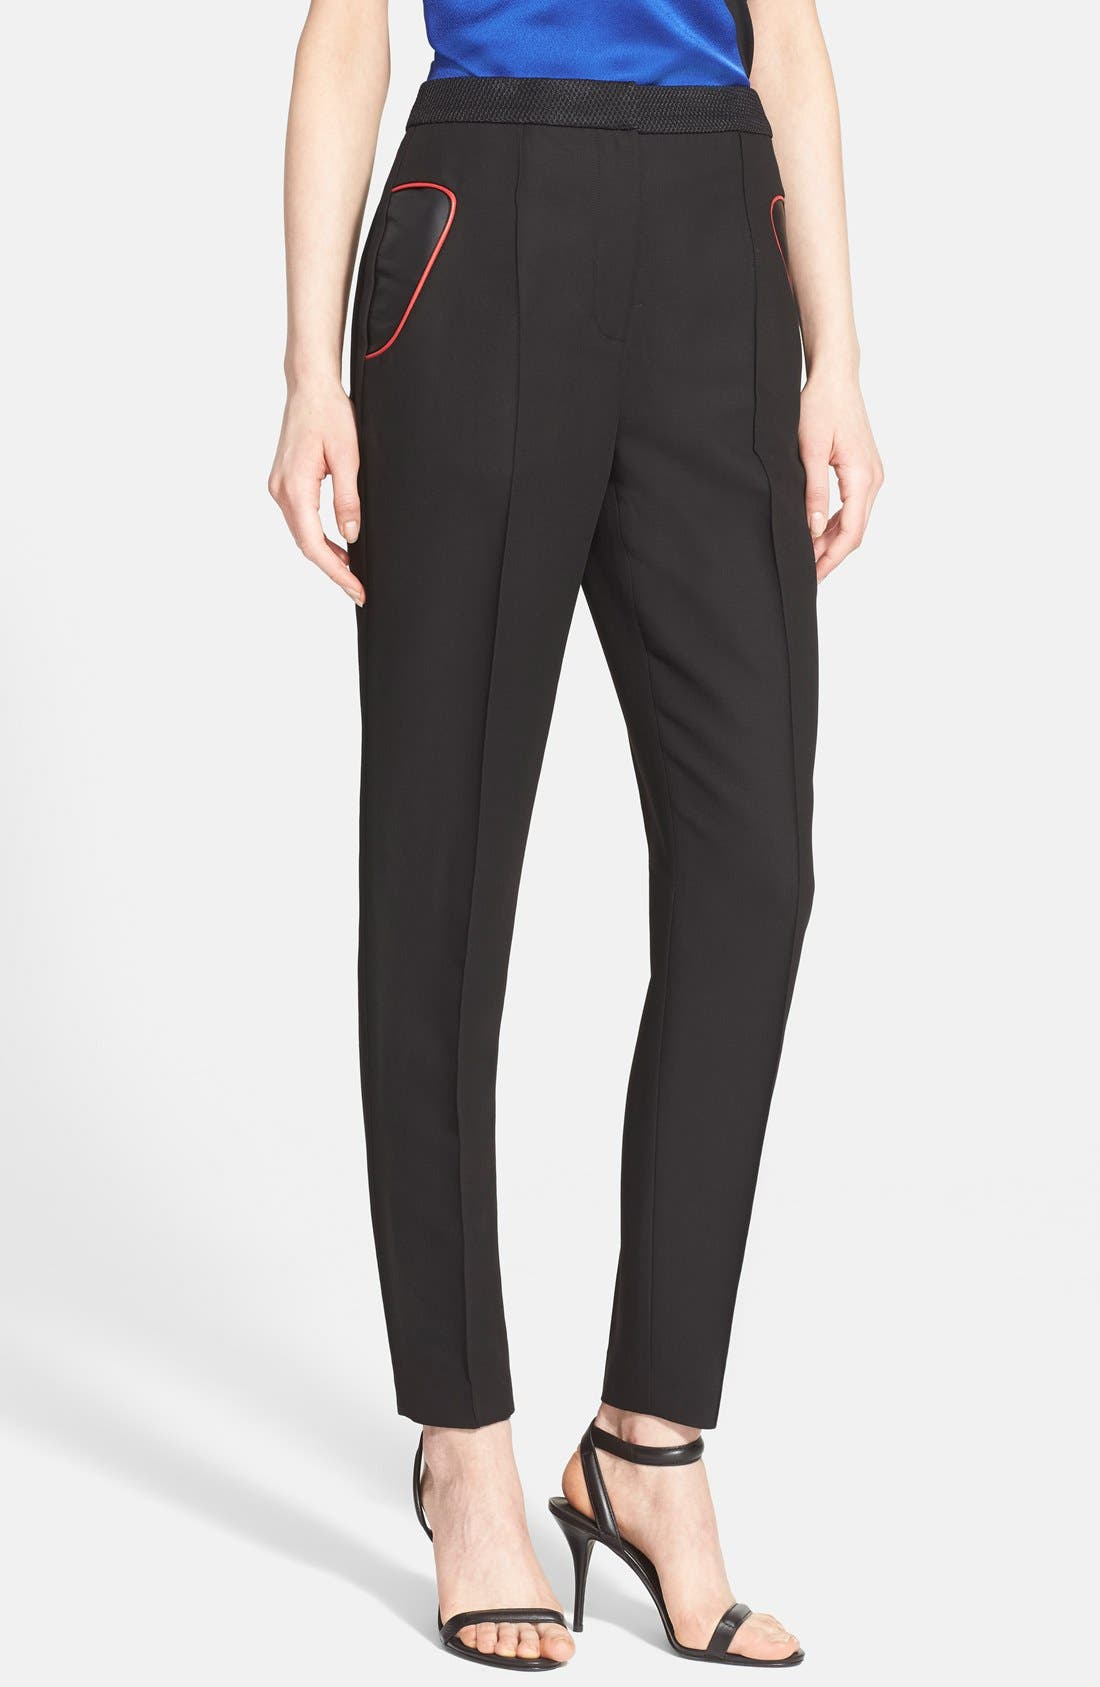 Alternate Image 1 Selected - Alexander Wang High Waist Tailored Pants with Leather Detail